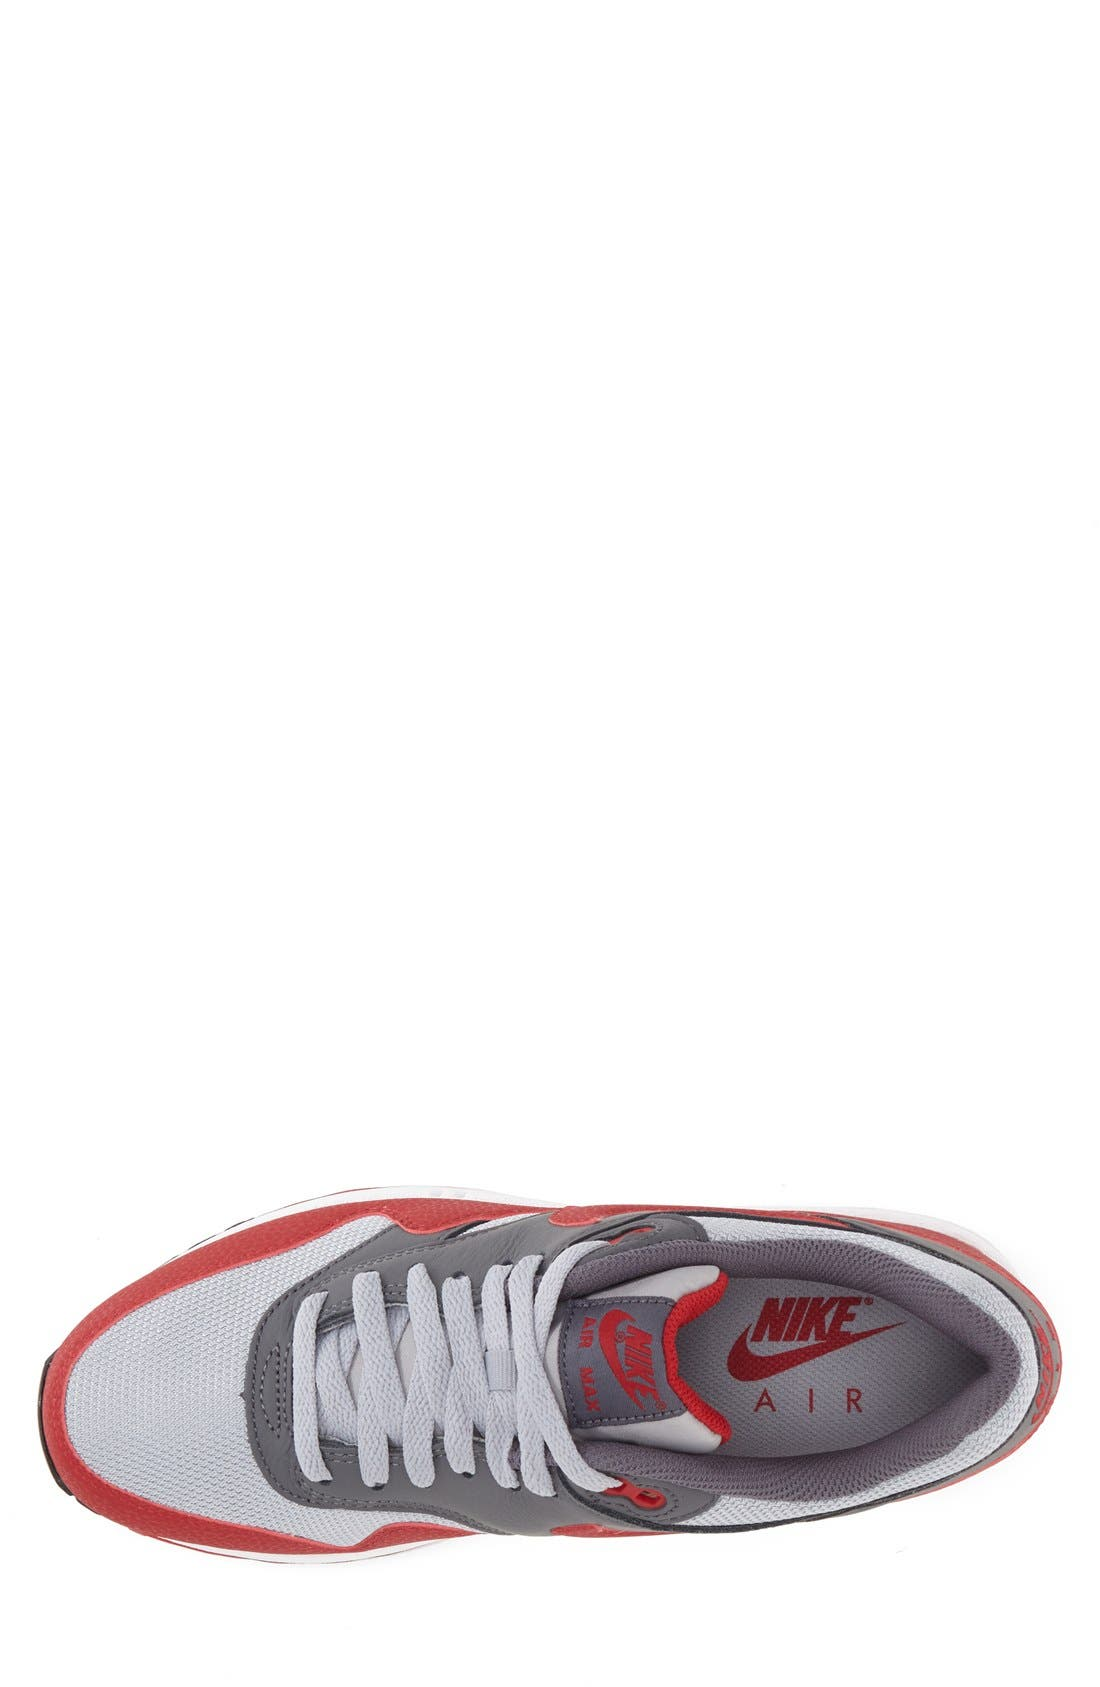 ,                             'Air Max 1 Essential' Sneaker,                             Alternate thumbnail 48, color,                             062